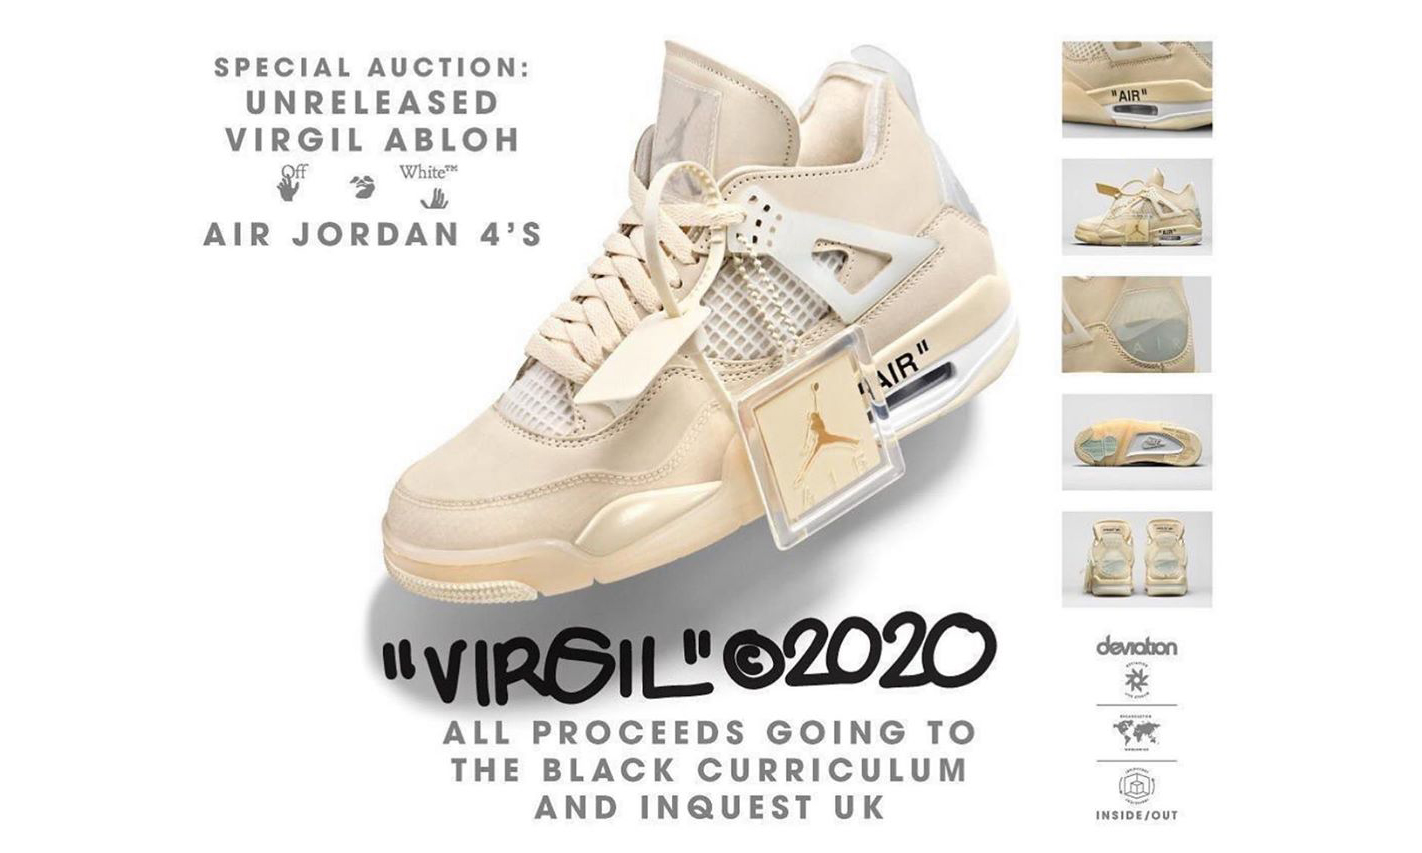 全部收益支持 BLM 运动,Virgil Abloh 拍卖 Off-White™ x Air Jordan IV 新配色